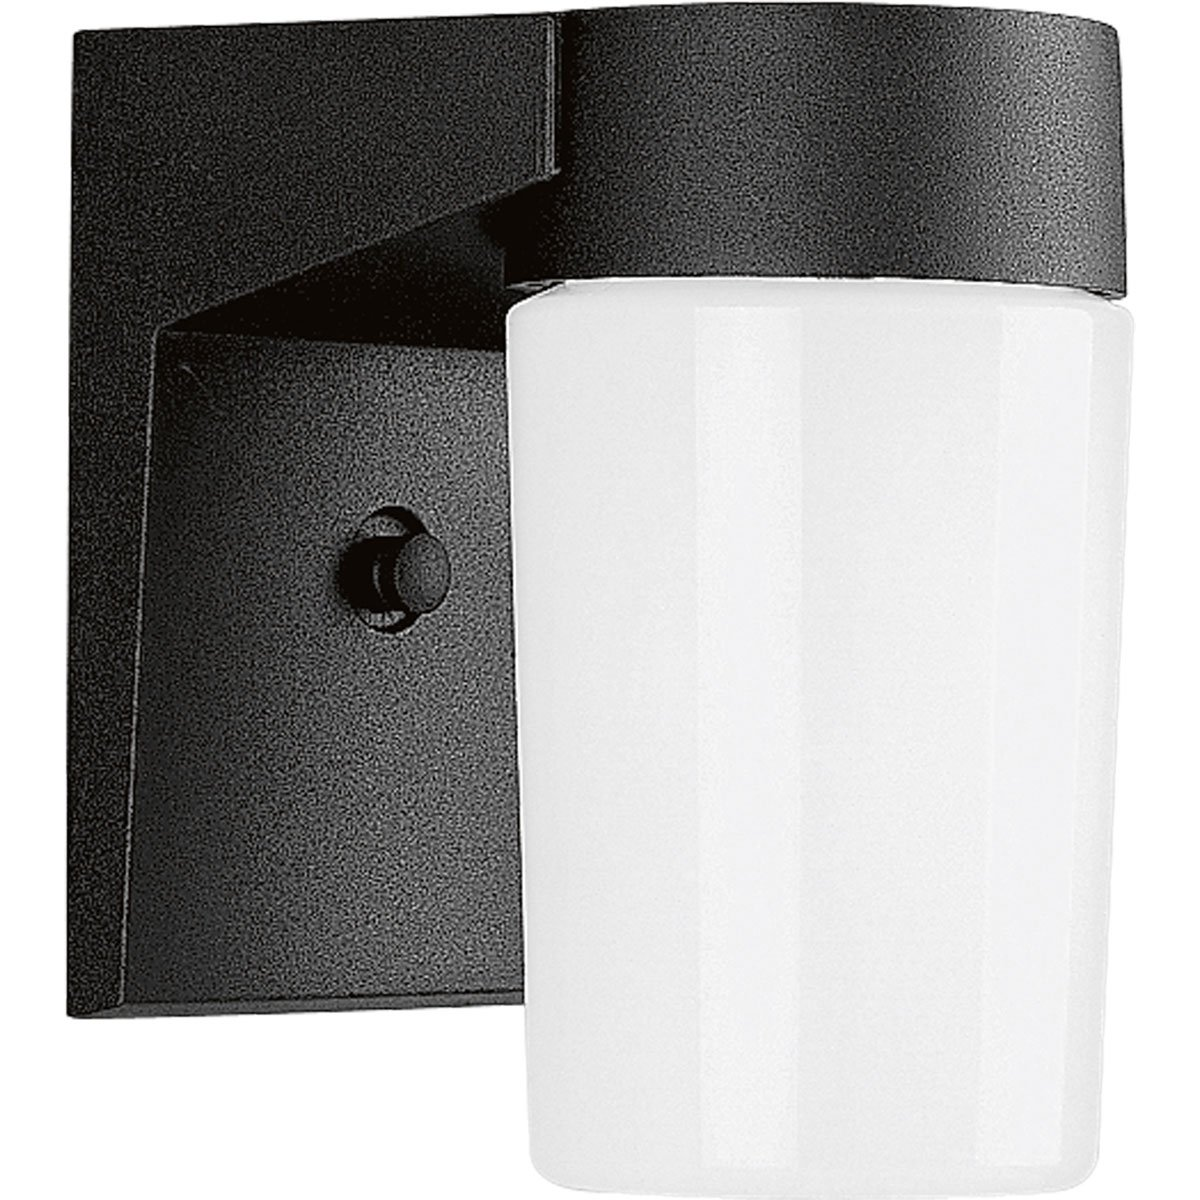 Progress Lighting P5511-31 Wall Fixture with Threaded Opal Glass Shades That Screw Onto Fitter with Vapor-Proof Gaskets and Porcelain Sockets, Black